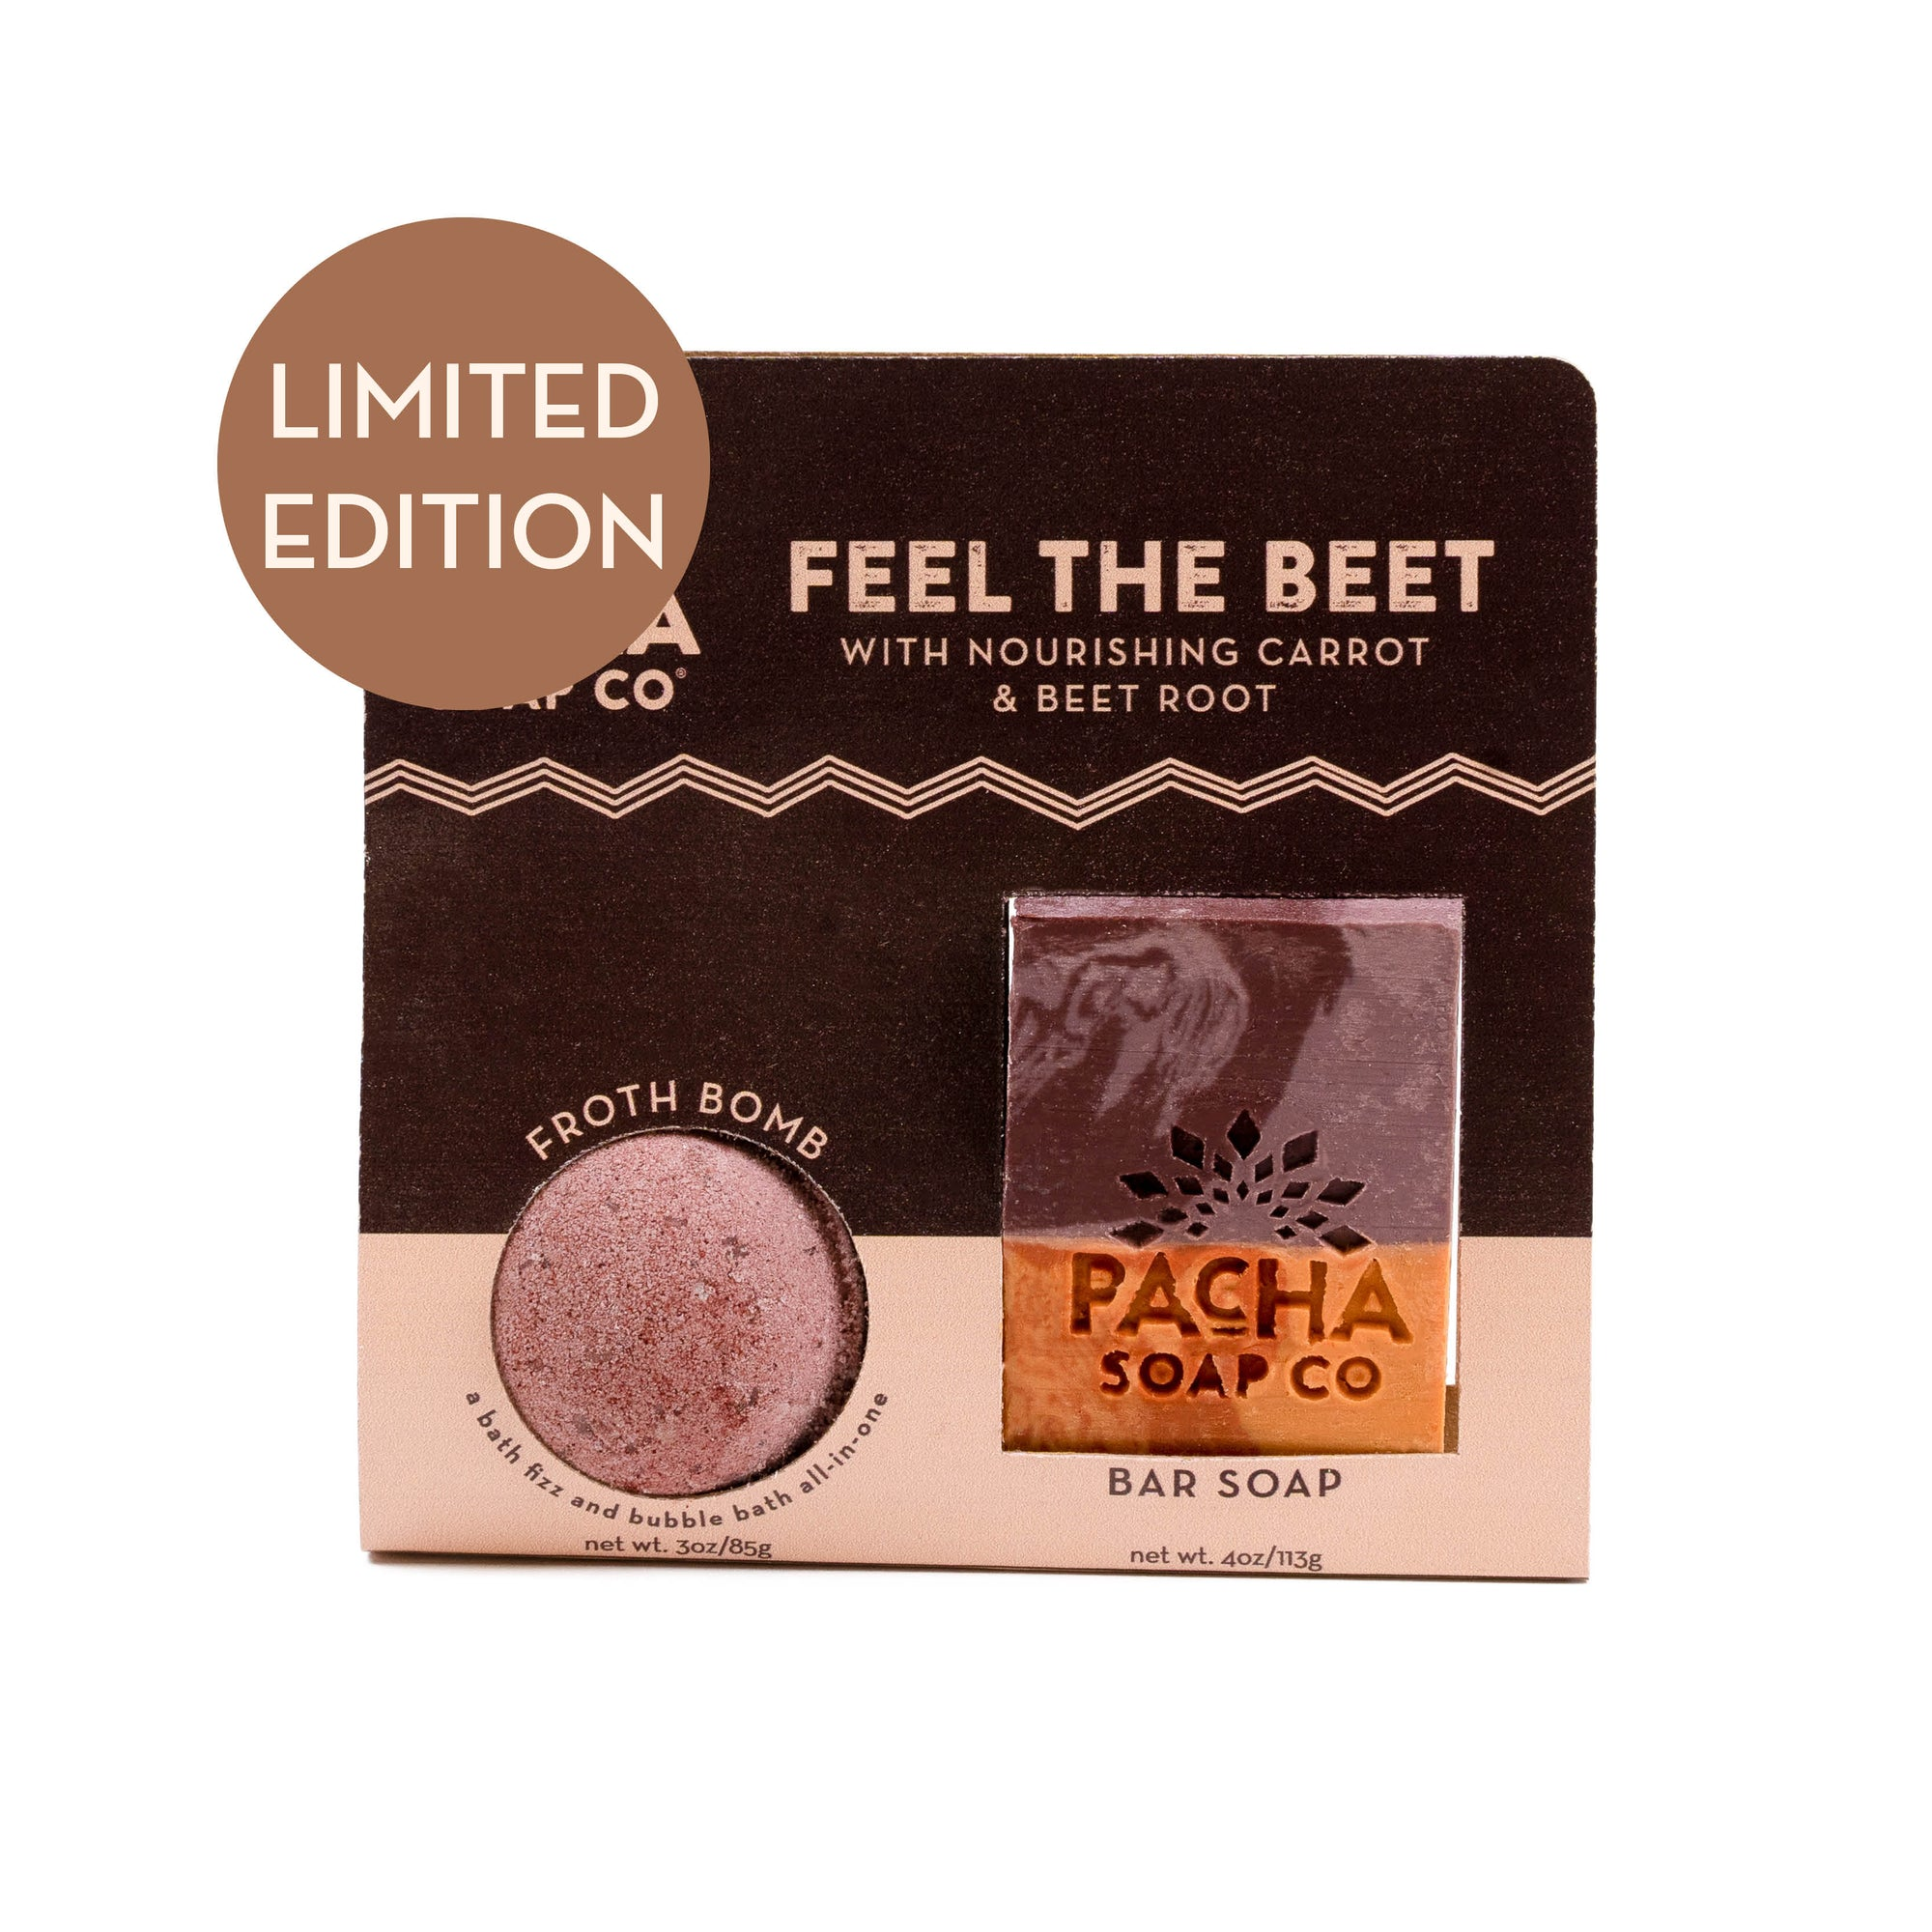 Feel the Beet Gift Set